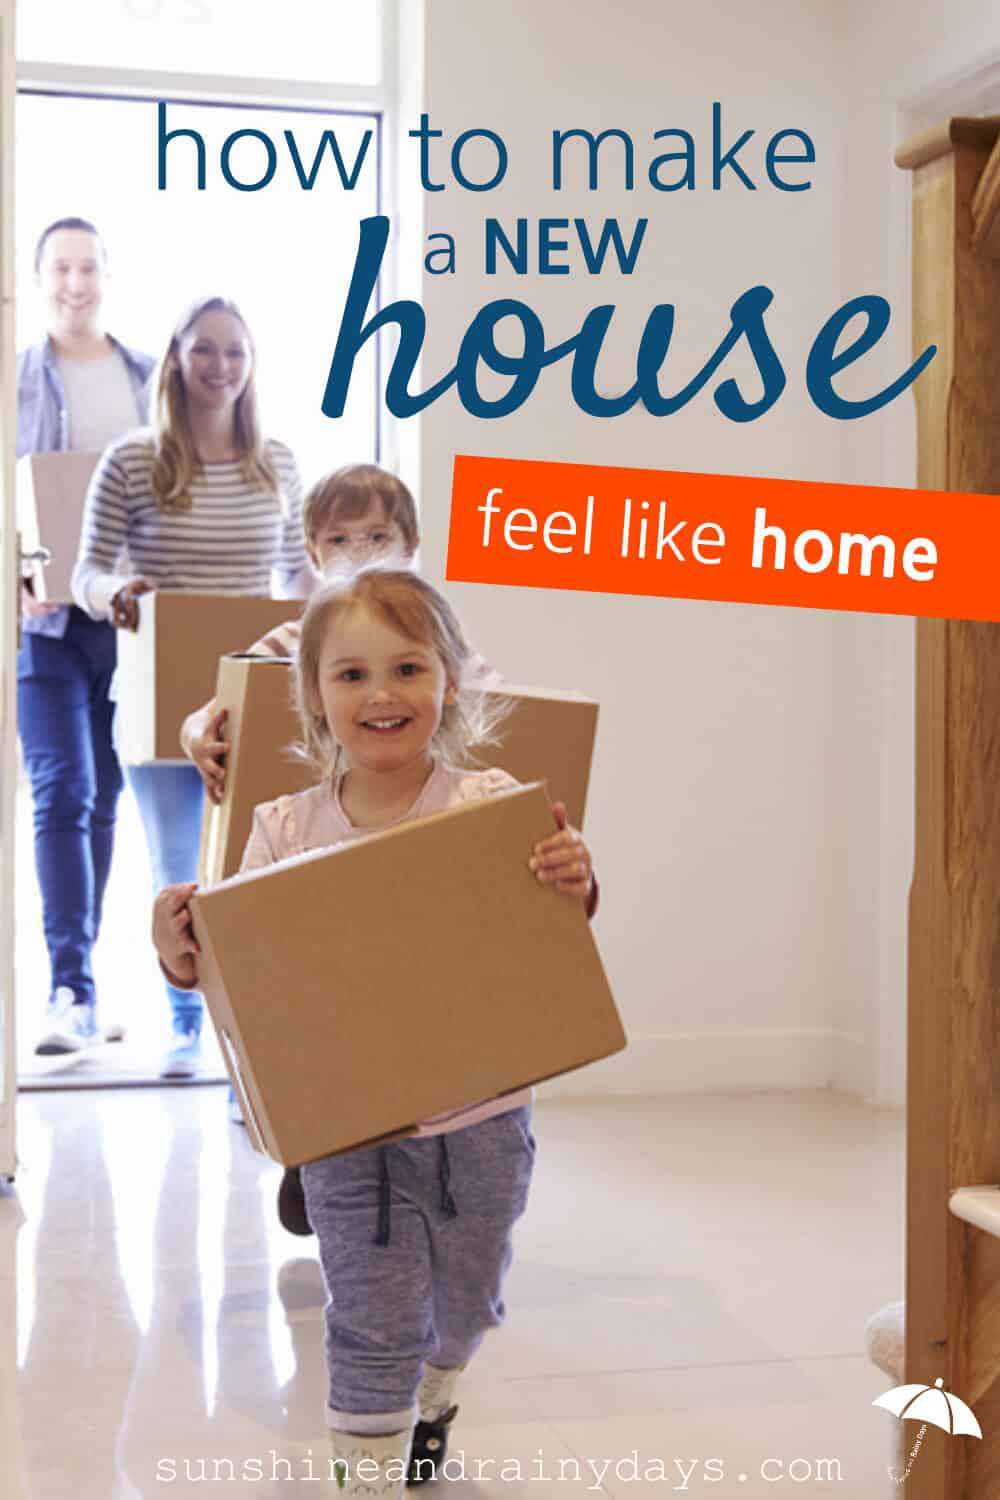 When you move into a new house, you may feel like you are in a VRBO (Vacation Rental By Owner) but with all your stuff. It doesn't feel like yours. It doesn't feel like HOME. BUT you are determined and are on the search of How To Make A New House Feel Like Home.